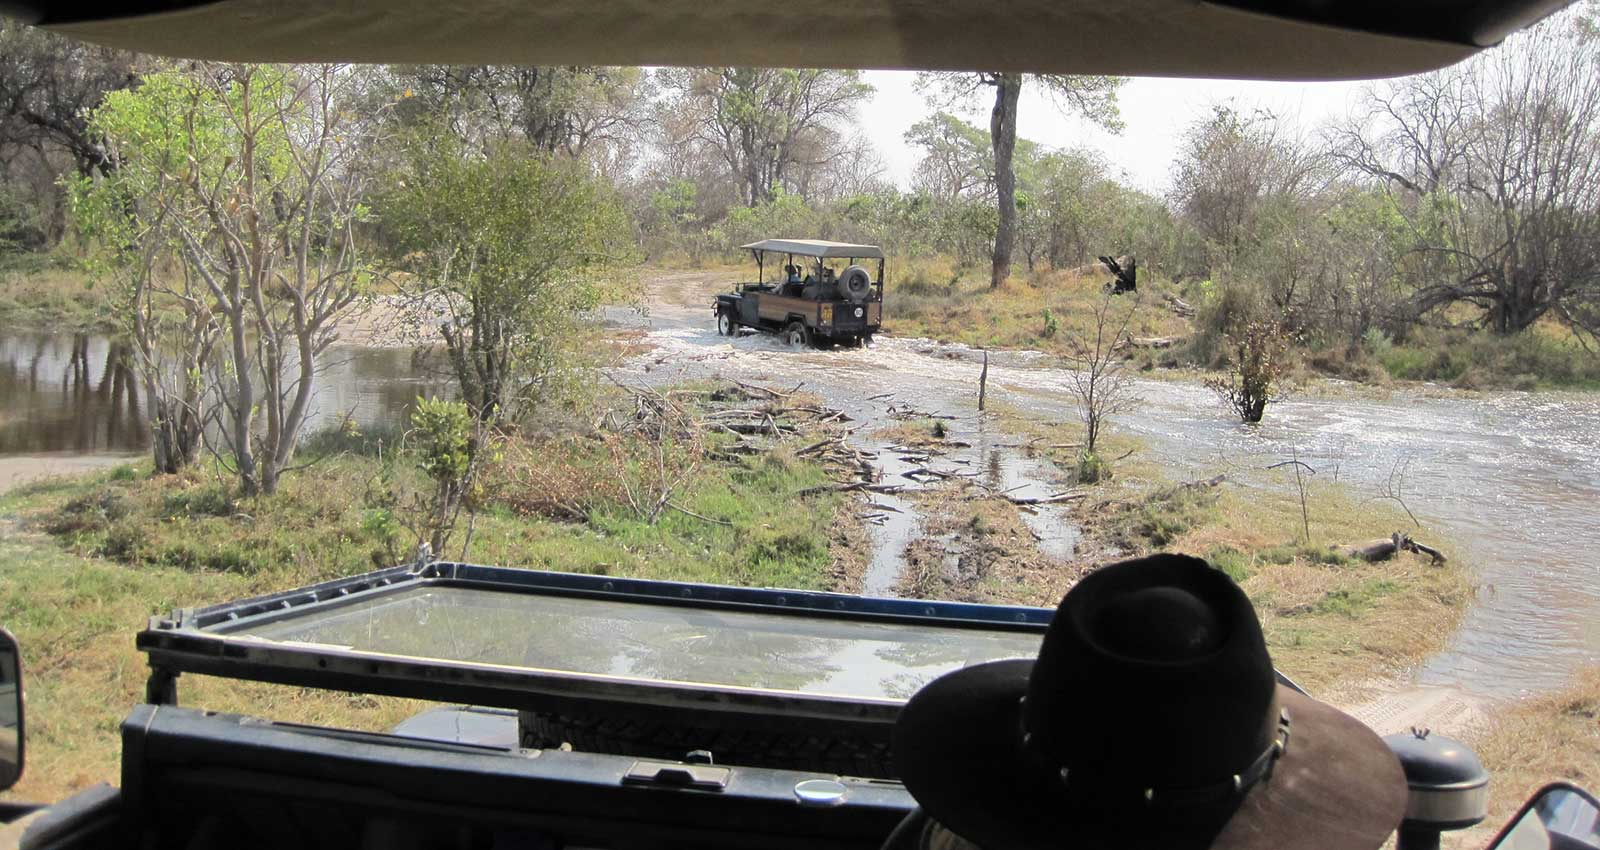 On game drive with Masson Safaris in Moremi Game Reserve